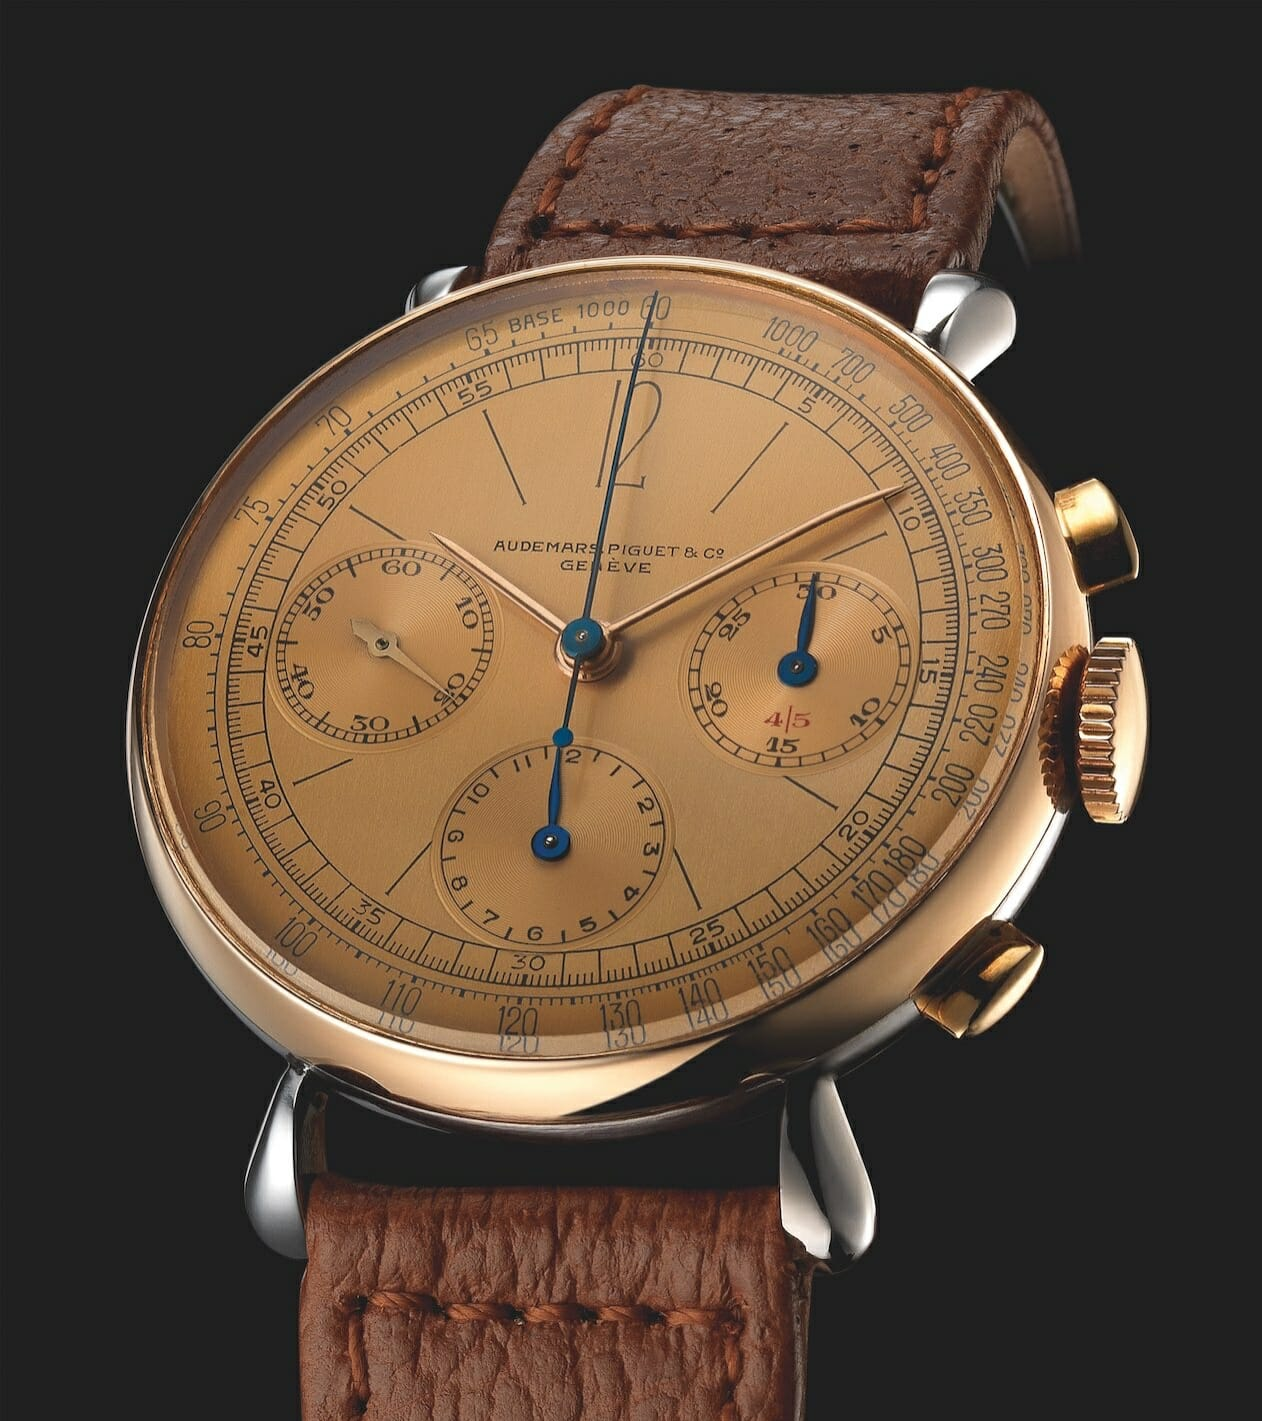 Audemars-Piguet-1533-chronograph-two-tone-steel-and-pink-gold_2